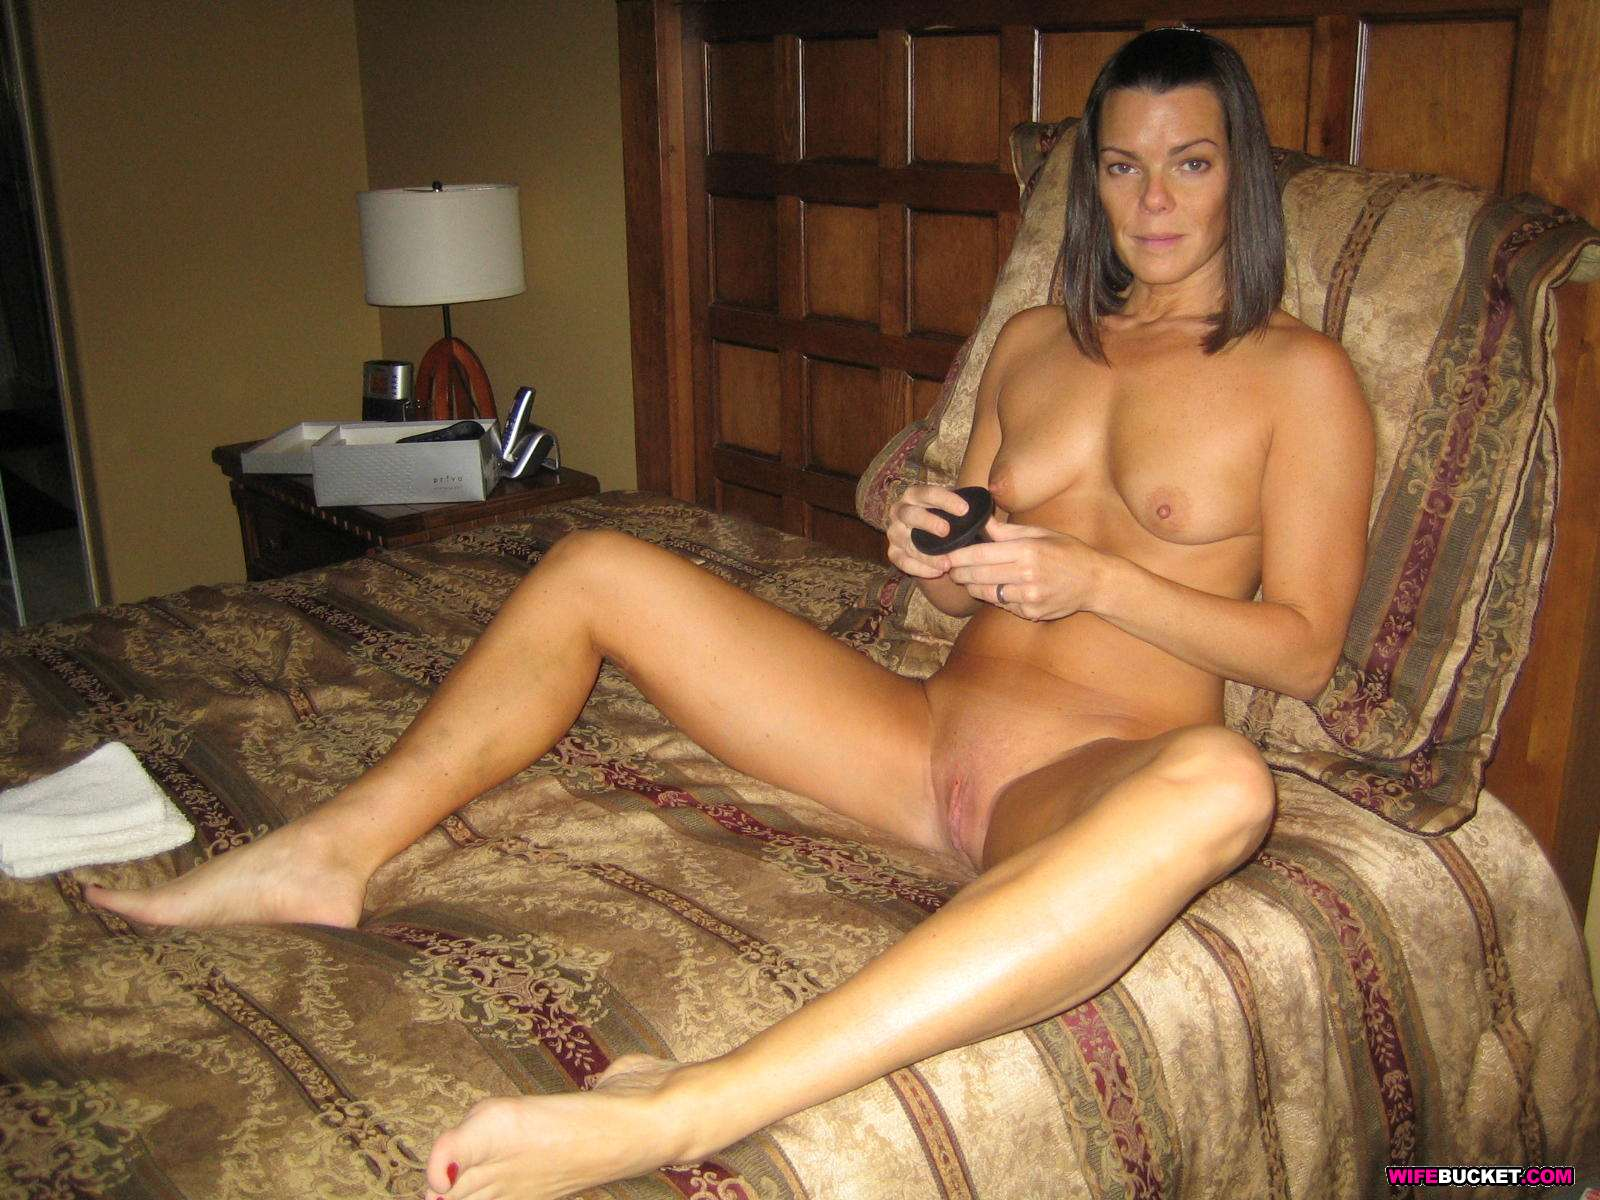 Wife at home naked